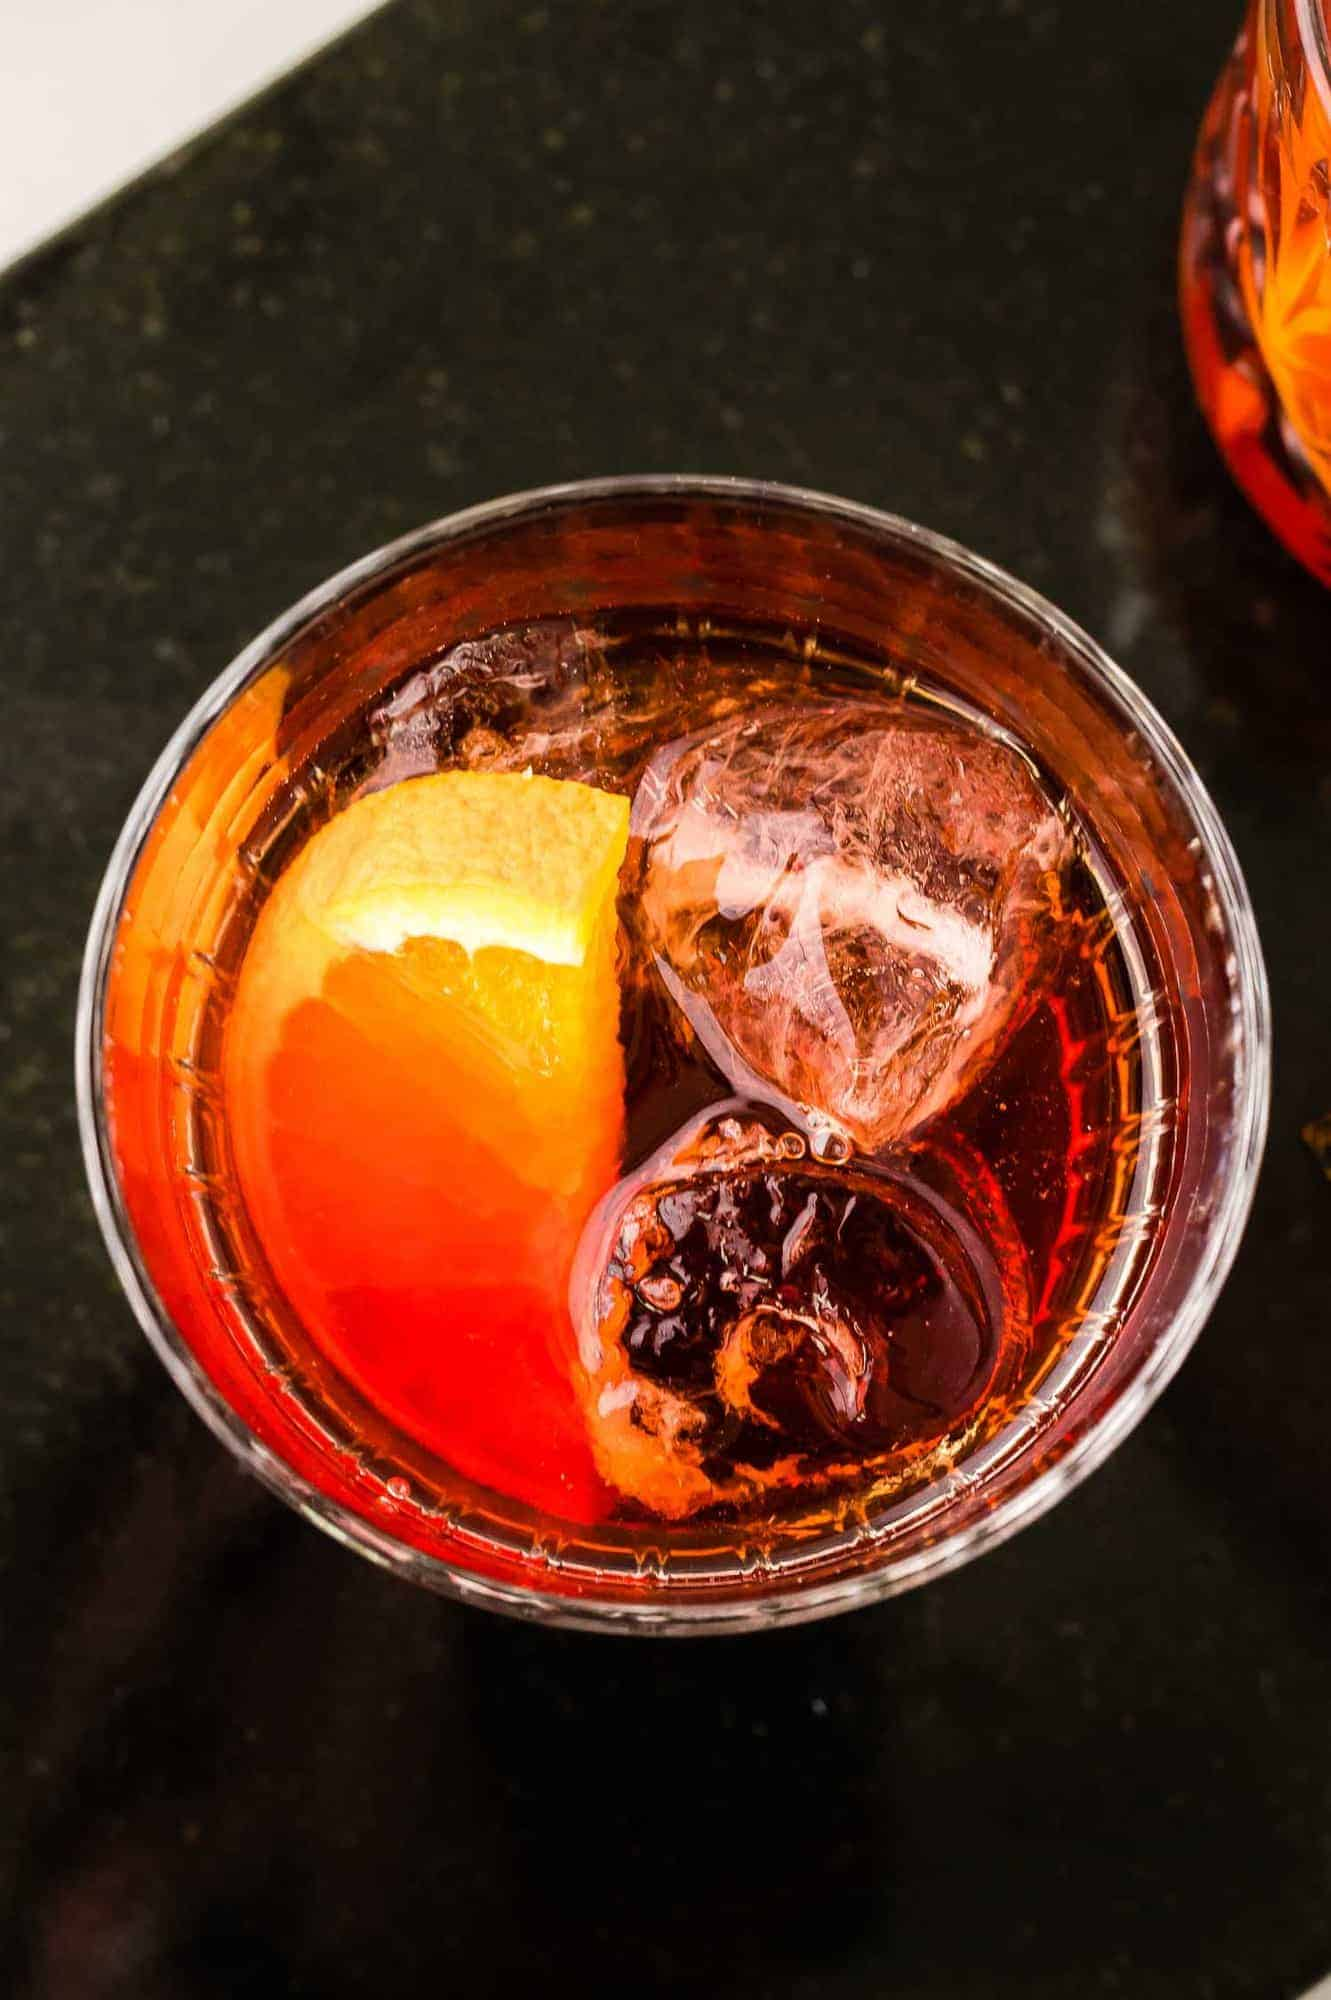 Overhead view of a drink with ice and an orange slice, on a black background.